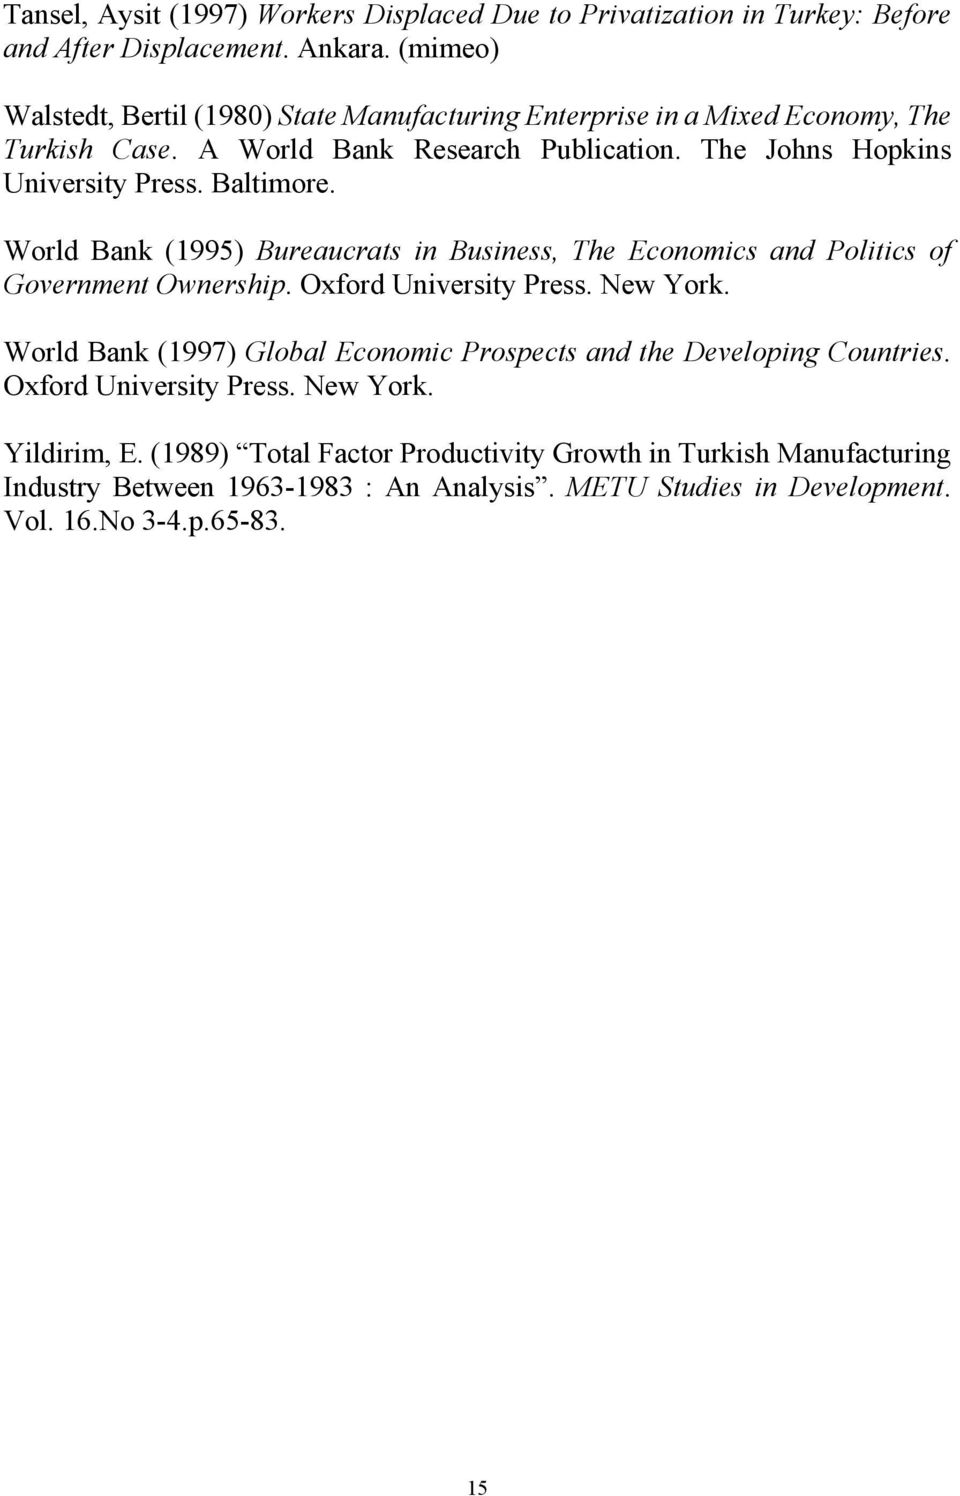 Baltimore. World Bank (1995) Bureaucrats in Business, The Economics and Politics of Government Ownership. Oxford University Press. New York.